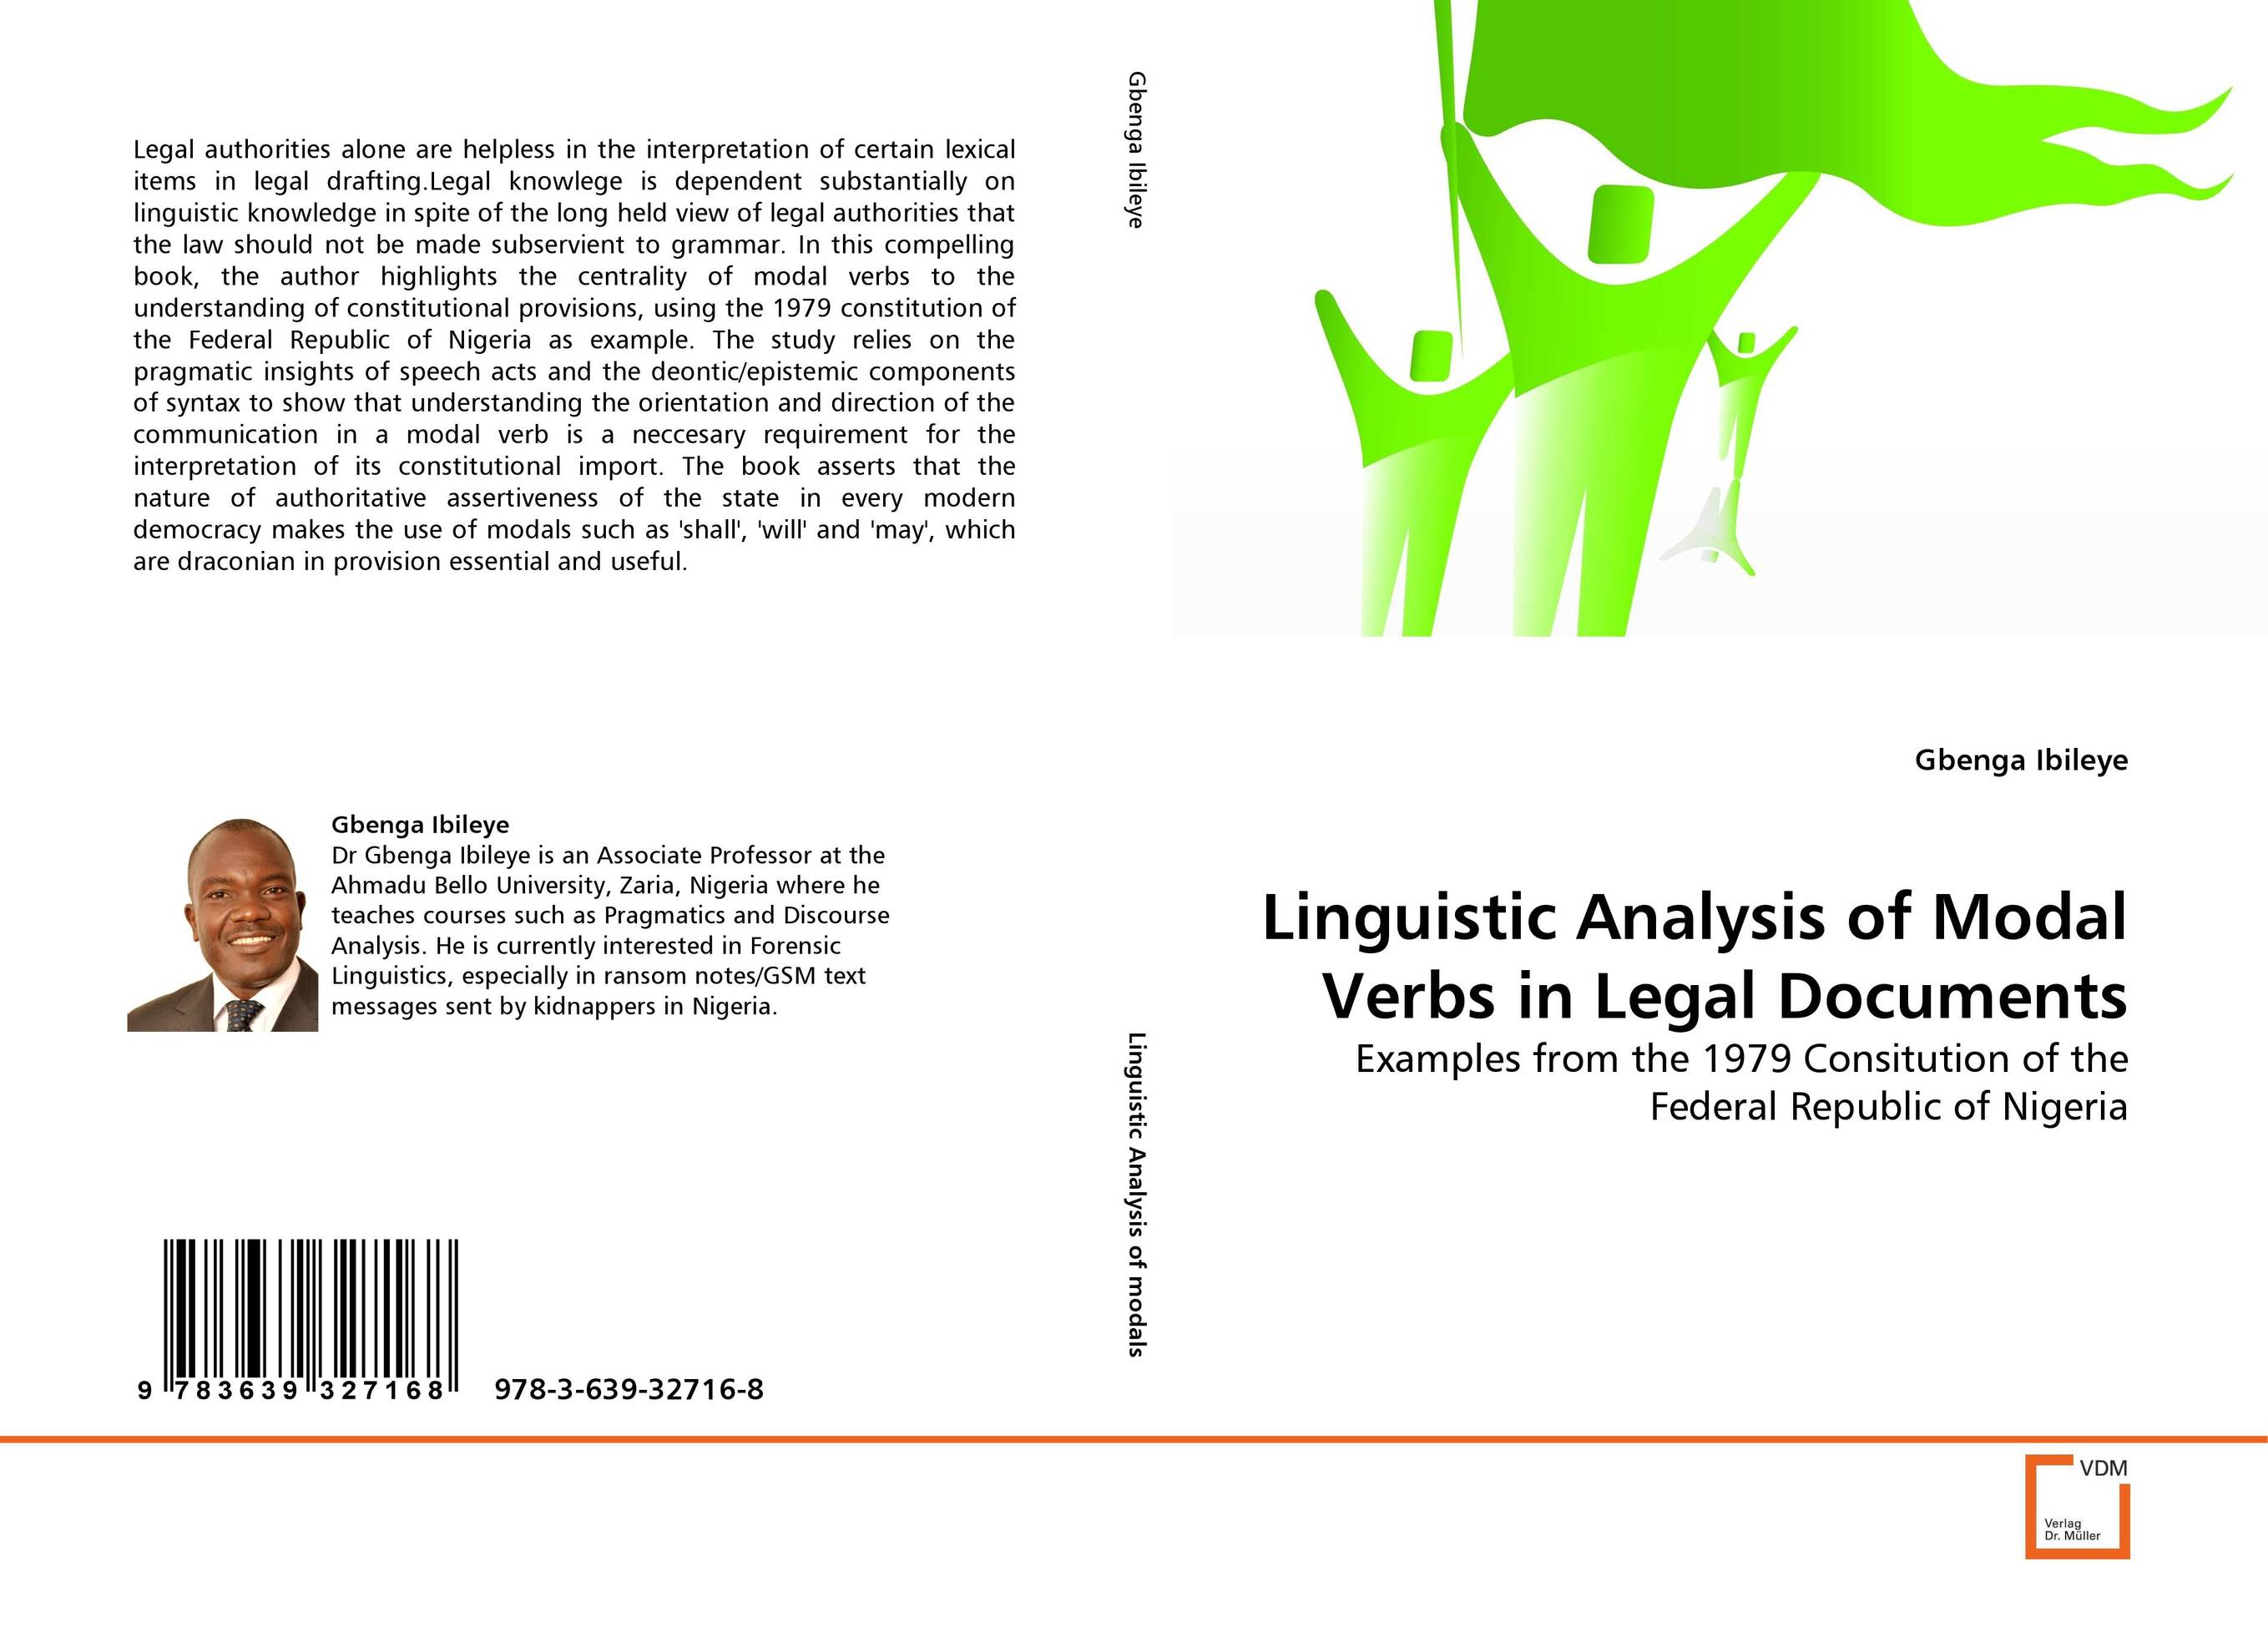 Linguistic Analysis of Modal Verbs in Legal Documents